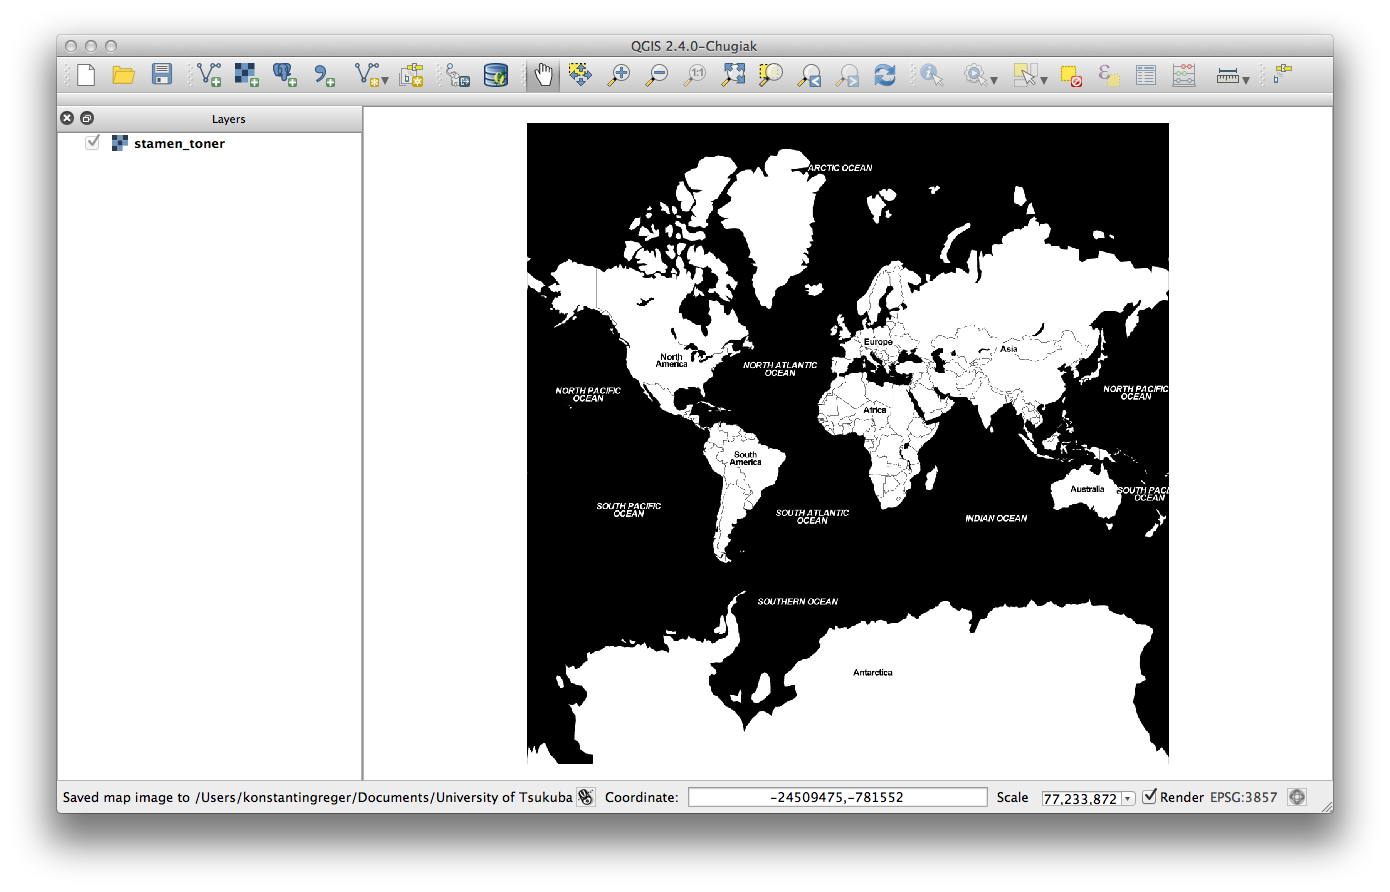 tableau map layers with Using Map Tile Servers In Qgis 2 4 on How To Create Concentric Circles In Powerpoint as well 4 Quick Design Tips Maps furthermore Layers Panel Icon 27554 further Using Map Tile Servers In Qgis 2 4 likewise Paperboard.